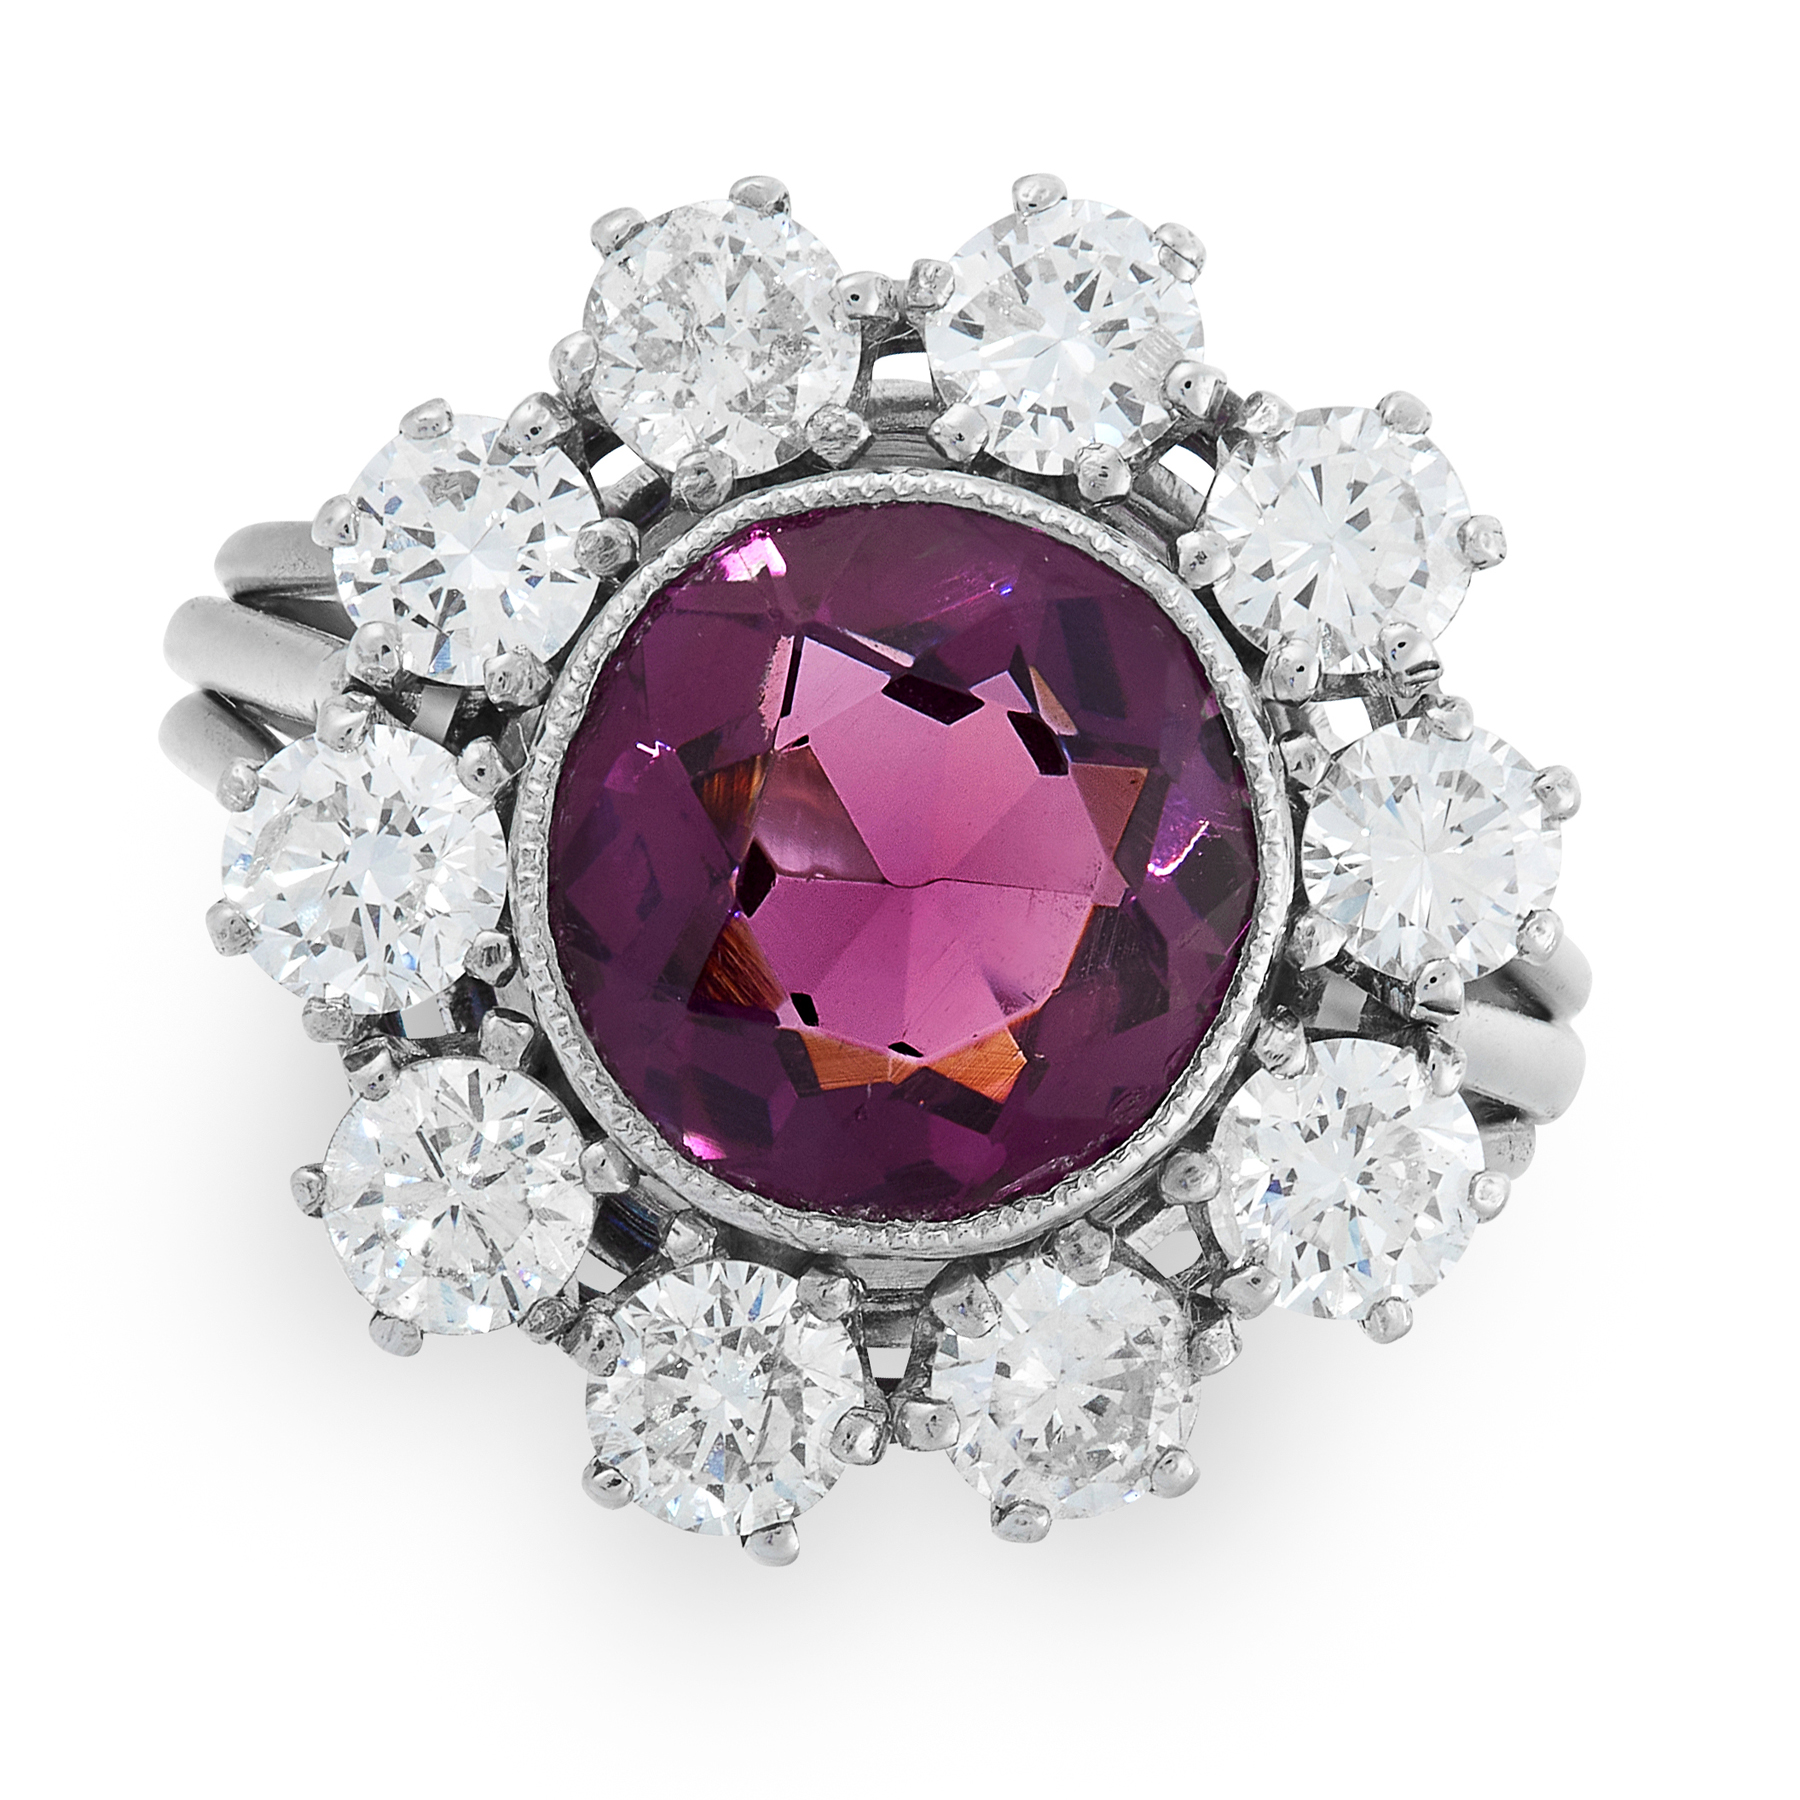 AN AMETHYST AND DIAMOND CLUSTER RING set with a round cut amethyst of 1.53 carats within a cluster